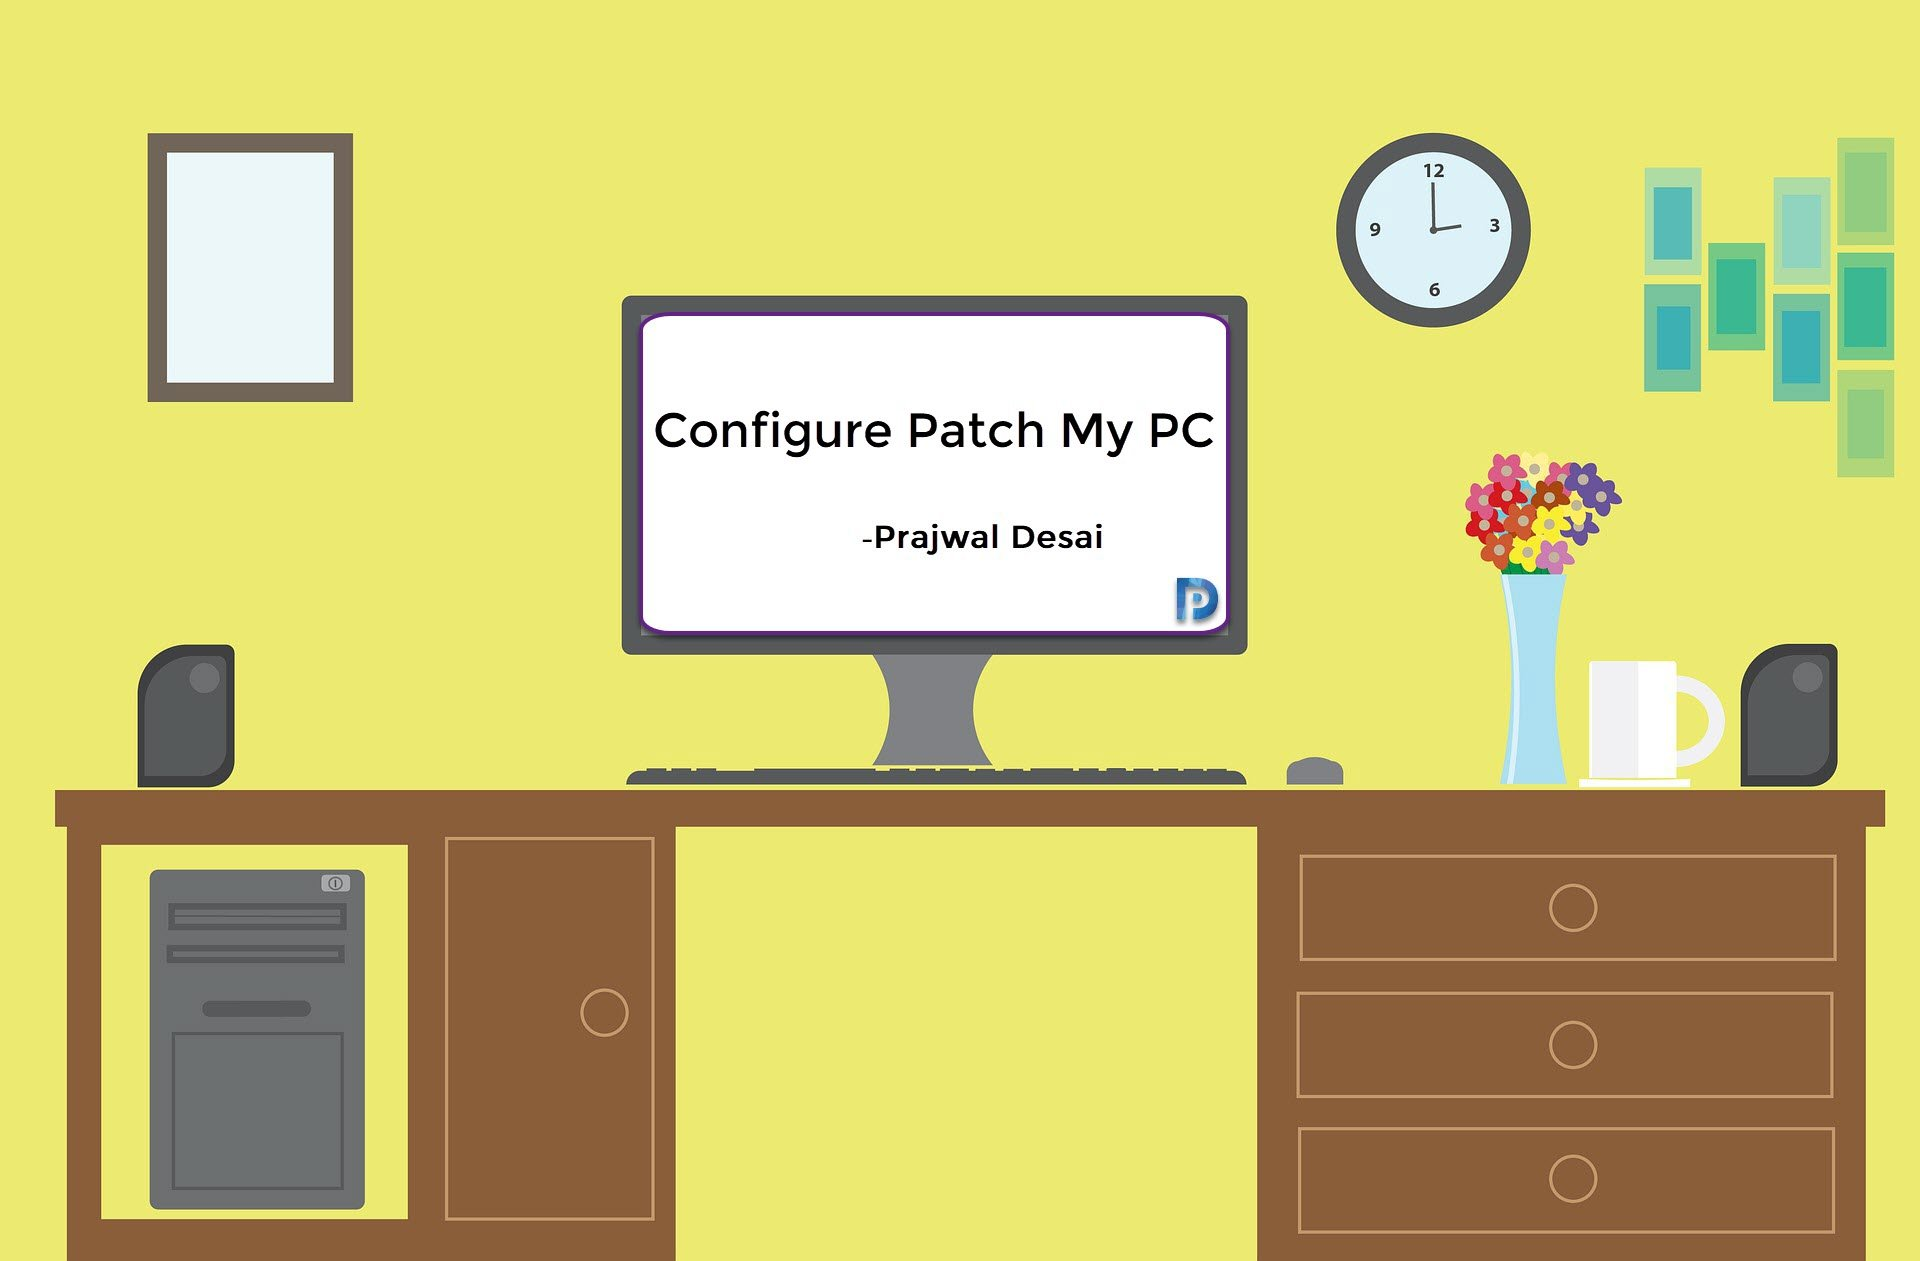 Configure Patch My PC